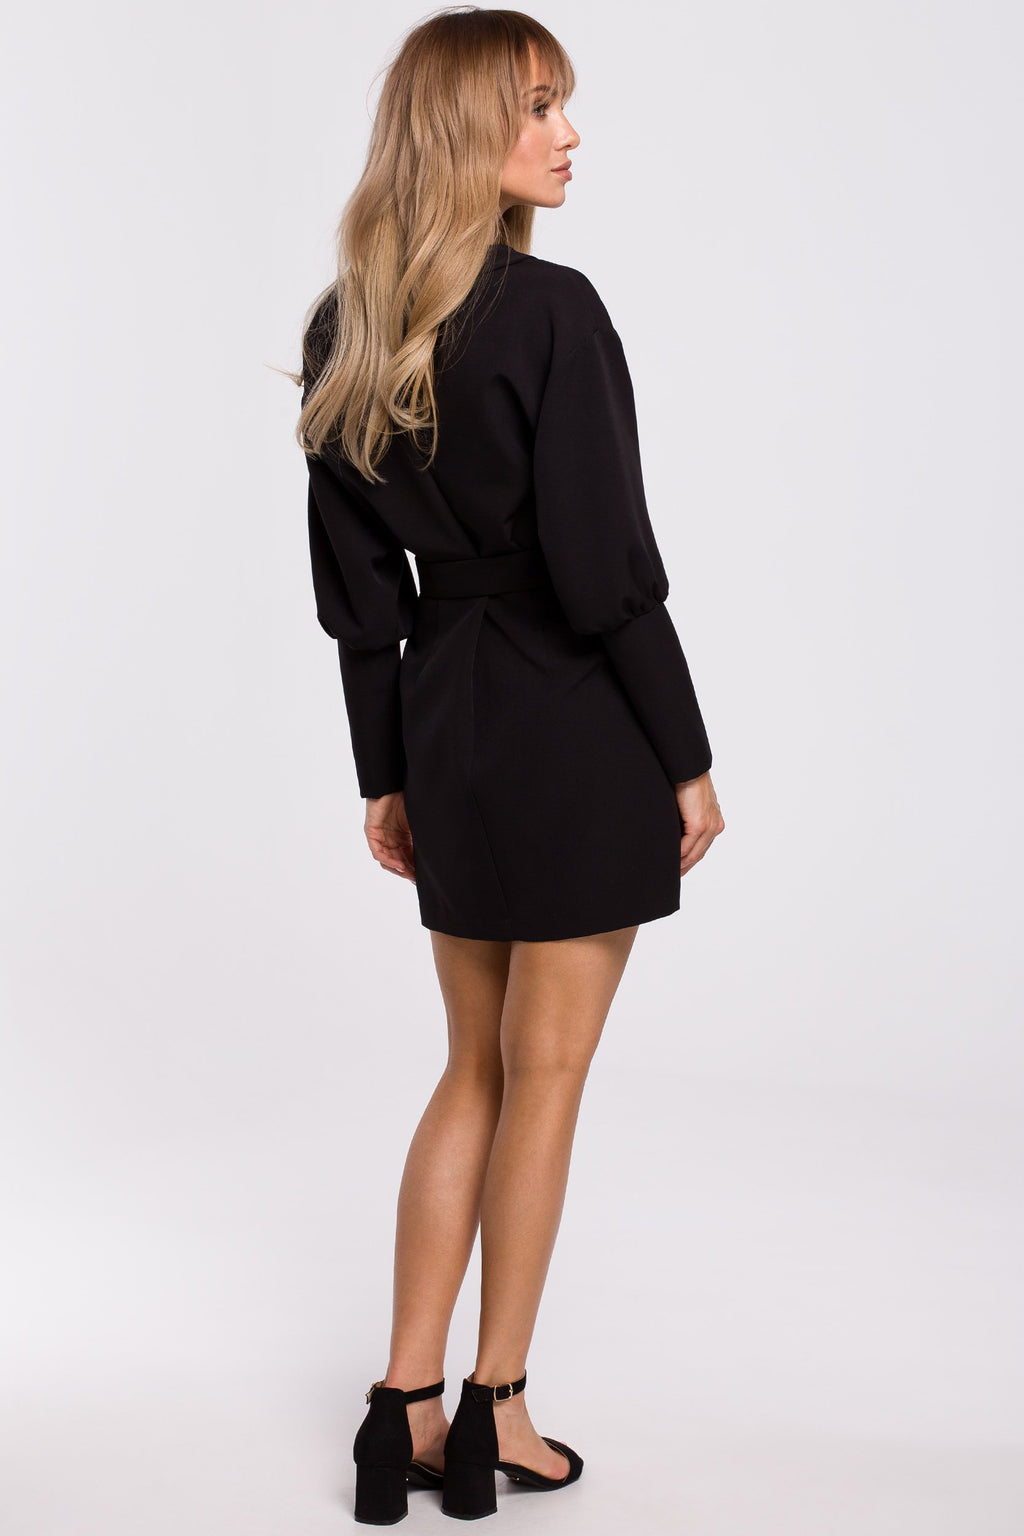 Black Mini Blazer Dress With Kimono Sleeves - So Chic Boutique